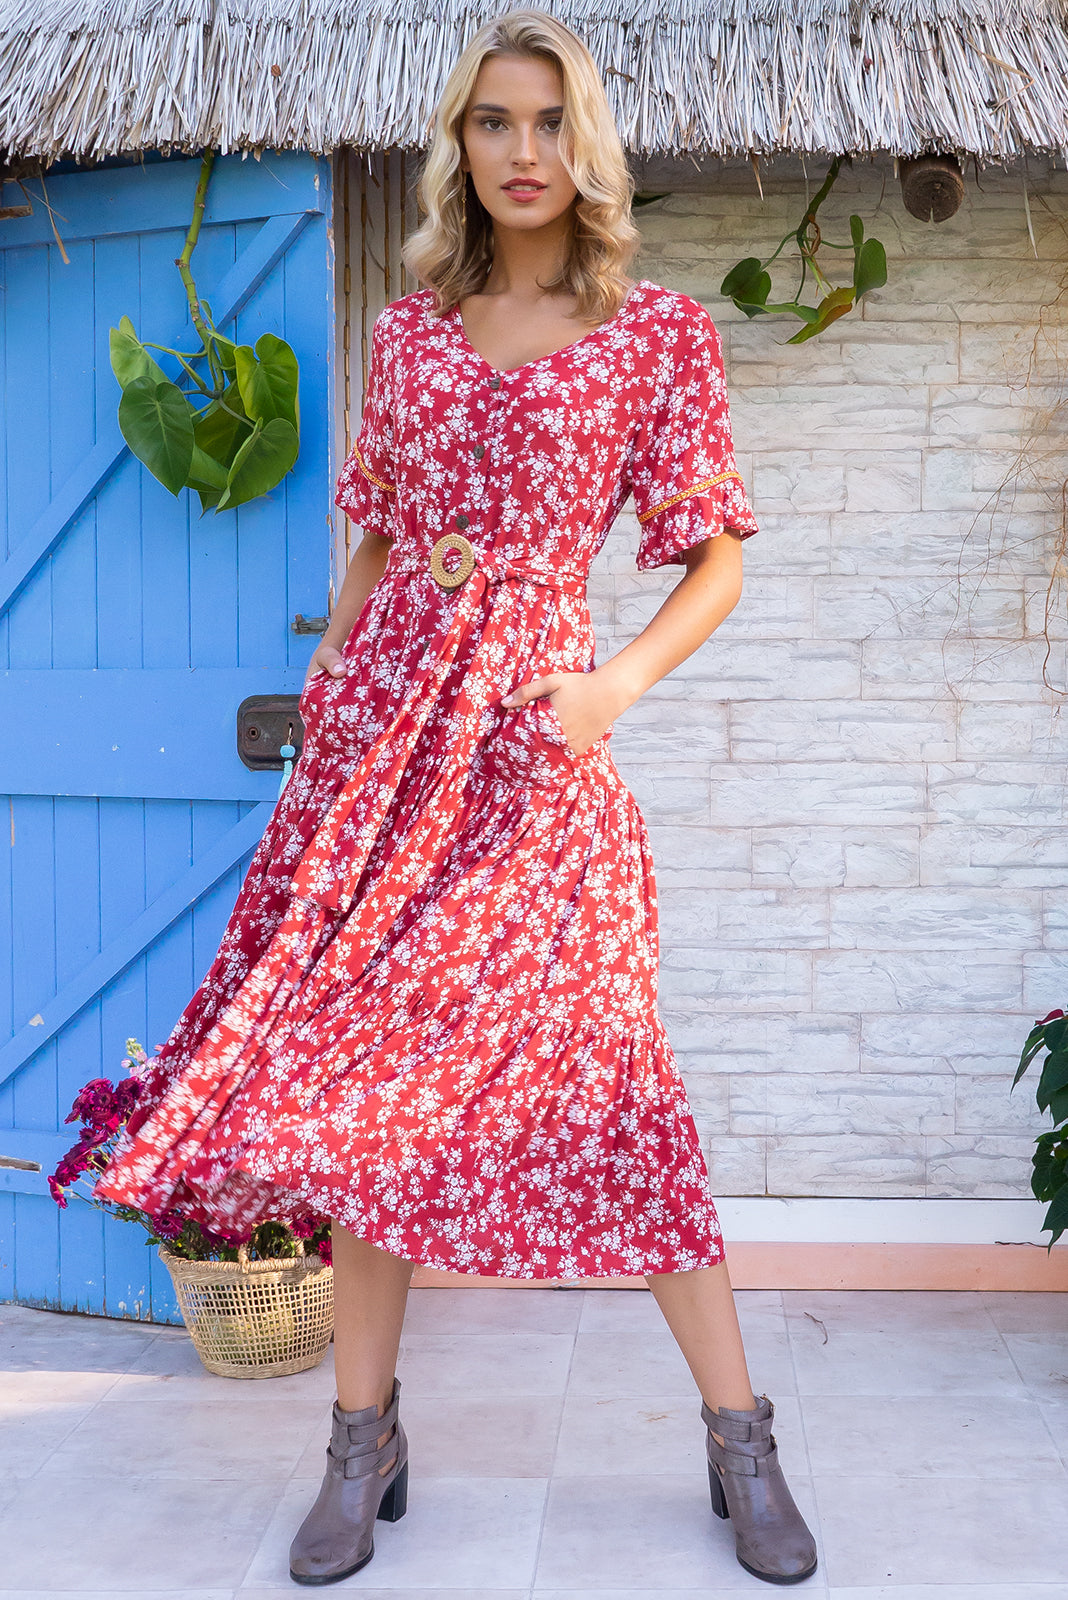 Lucinda Red Desert Maxi Dress features a frilled drop waist, button front, soft frill sleeves and a feature rattan buck belt the fabric is a soft crinkle textured woven 100% rayon in a rust red floral print